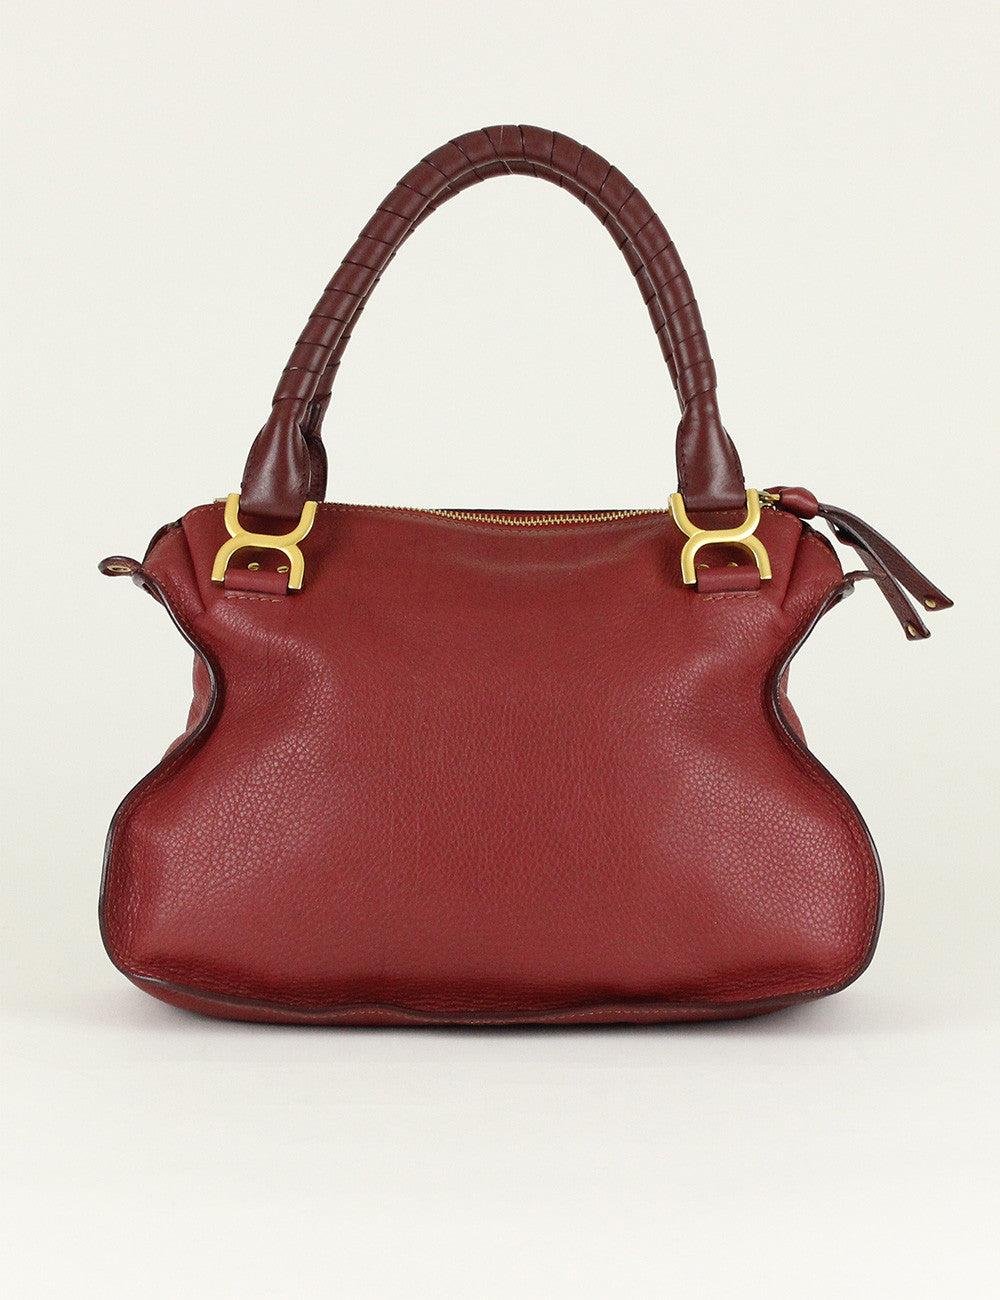 Chloe <br> Medium Marcie Satchel Bag